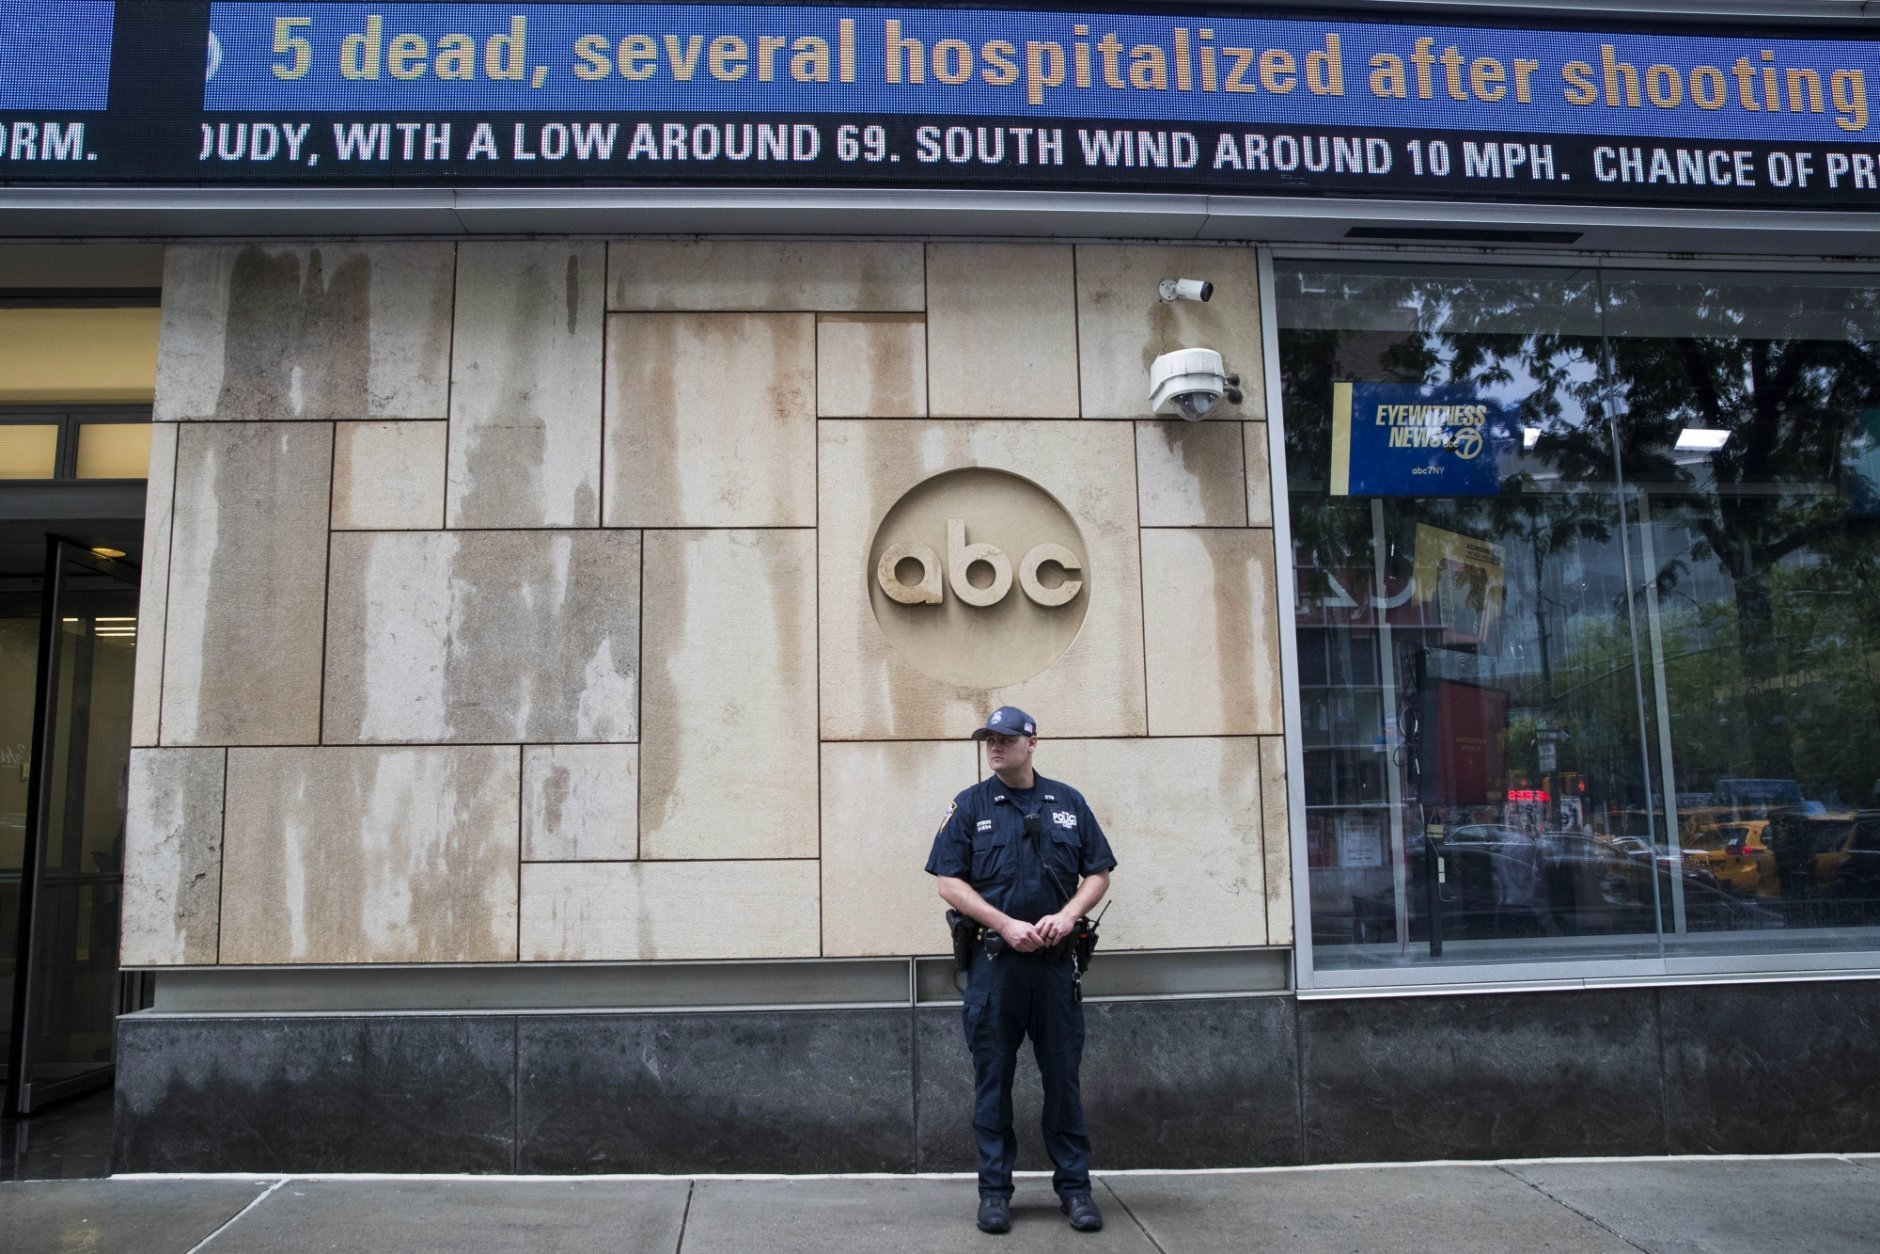 A police officer stands guard outside the ABC studio, Thursday, June 28, 2018, in New York. The New York Police Department has sent patrols to major news media organizations in response to the shooting at a newspaper in Annapolis, Maryland. (AP Photo/Mary Altaffer)